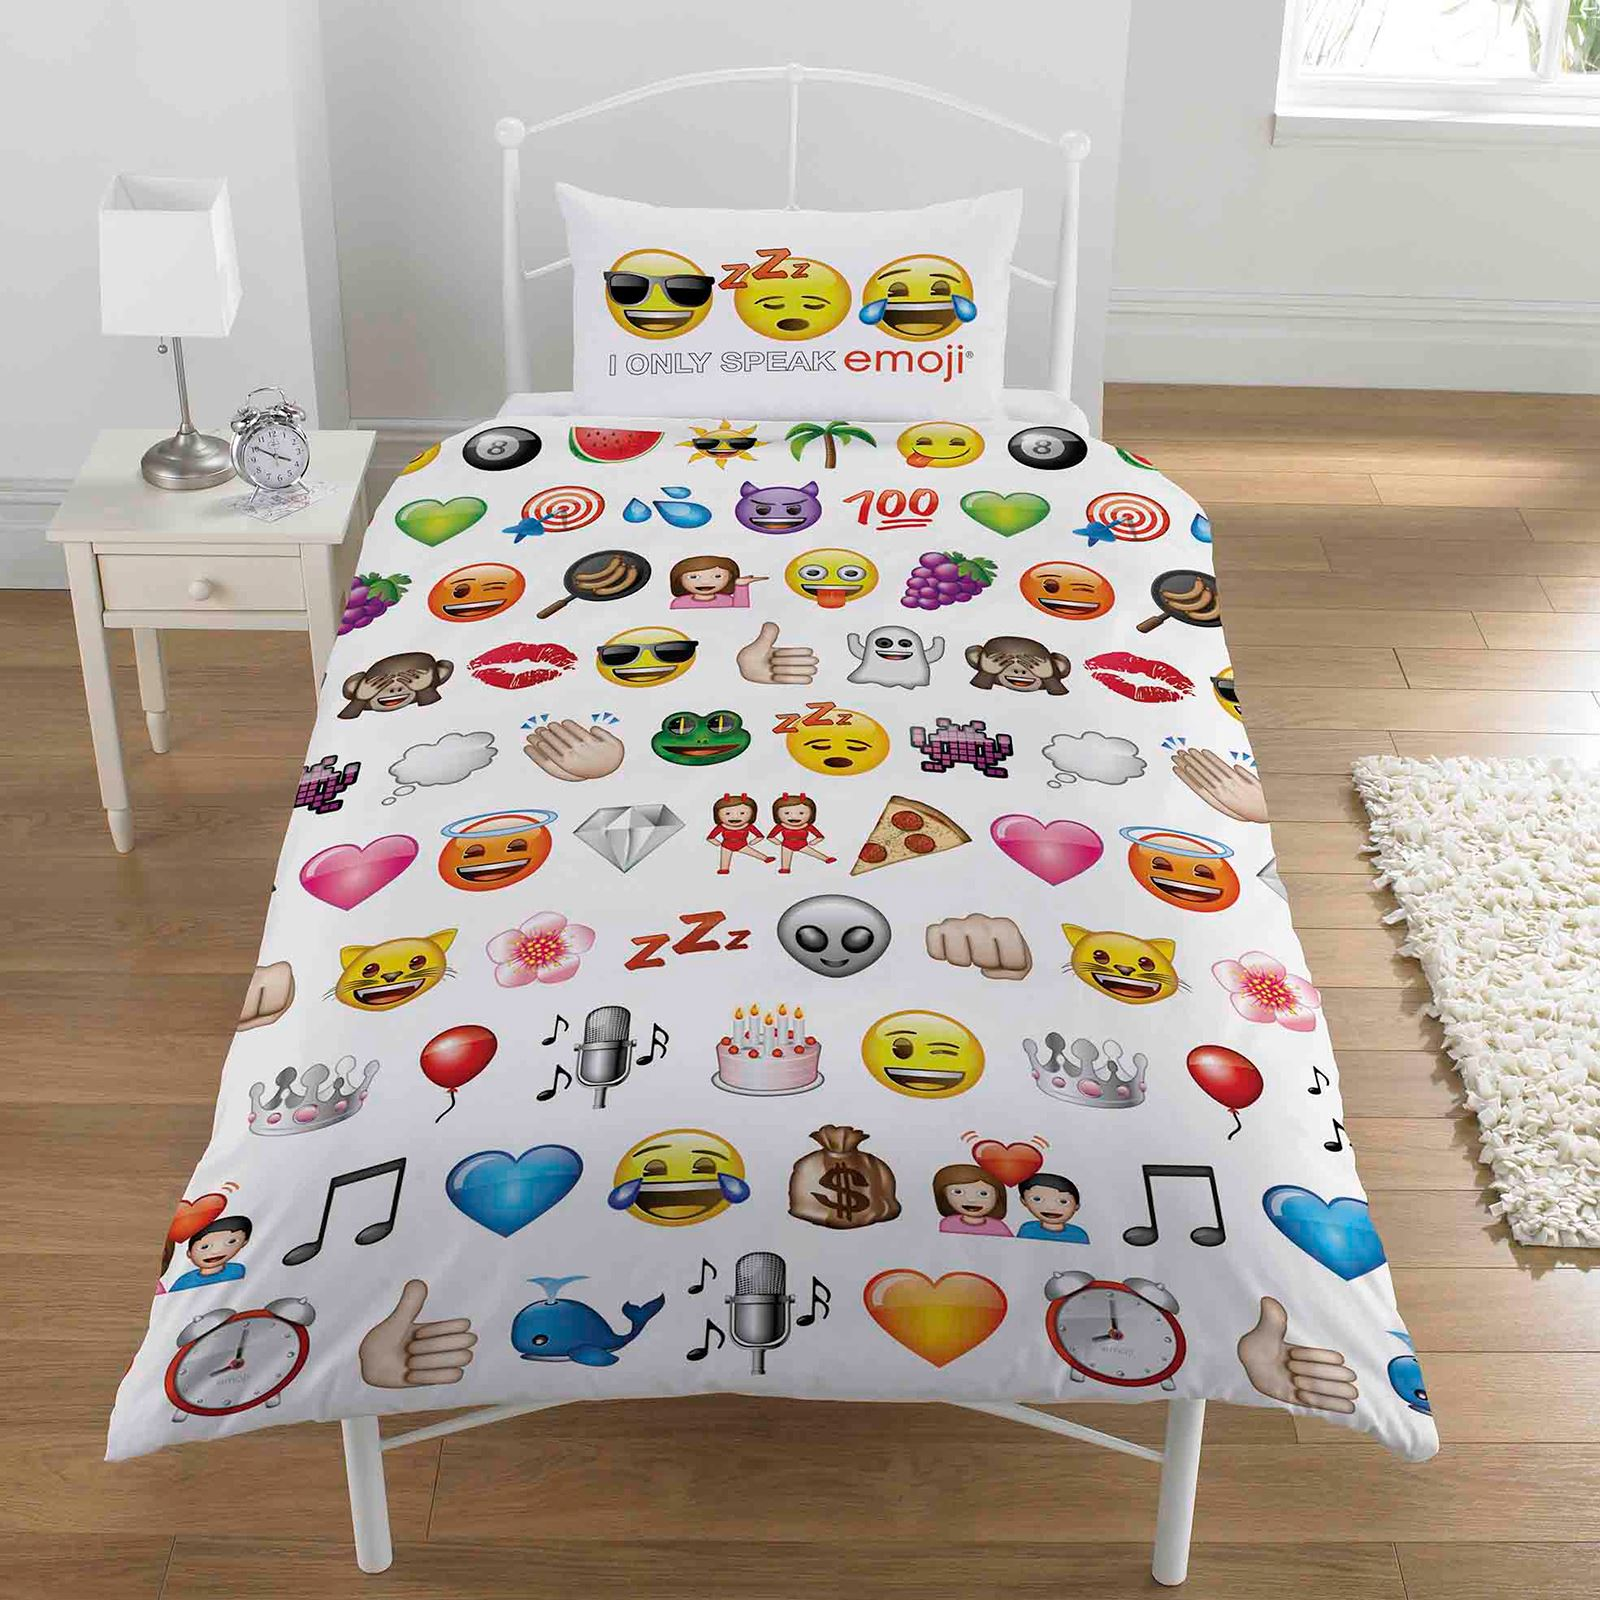 Emoji multi single duvet cover pillowcase set bedding for Taille housse couette pour lit 180x200